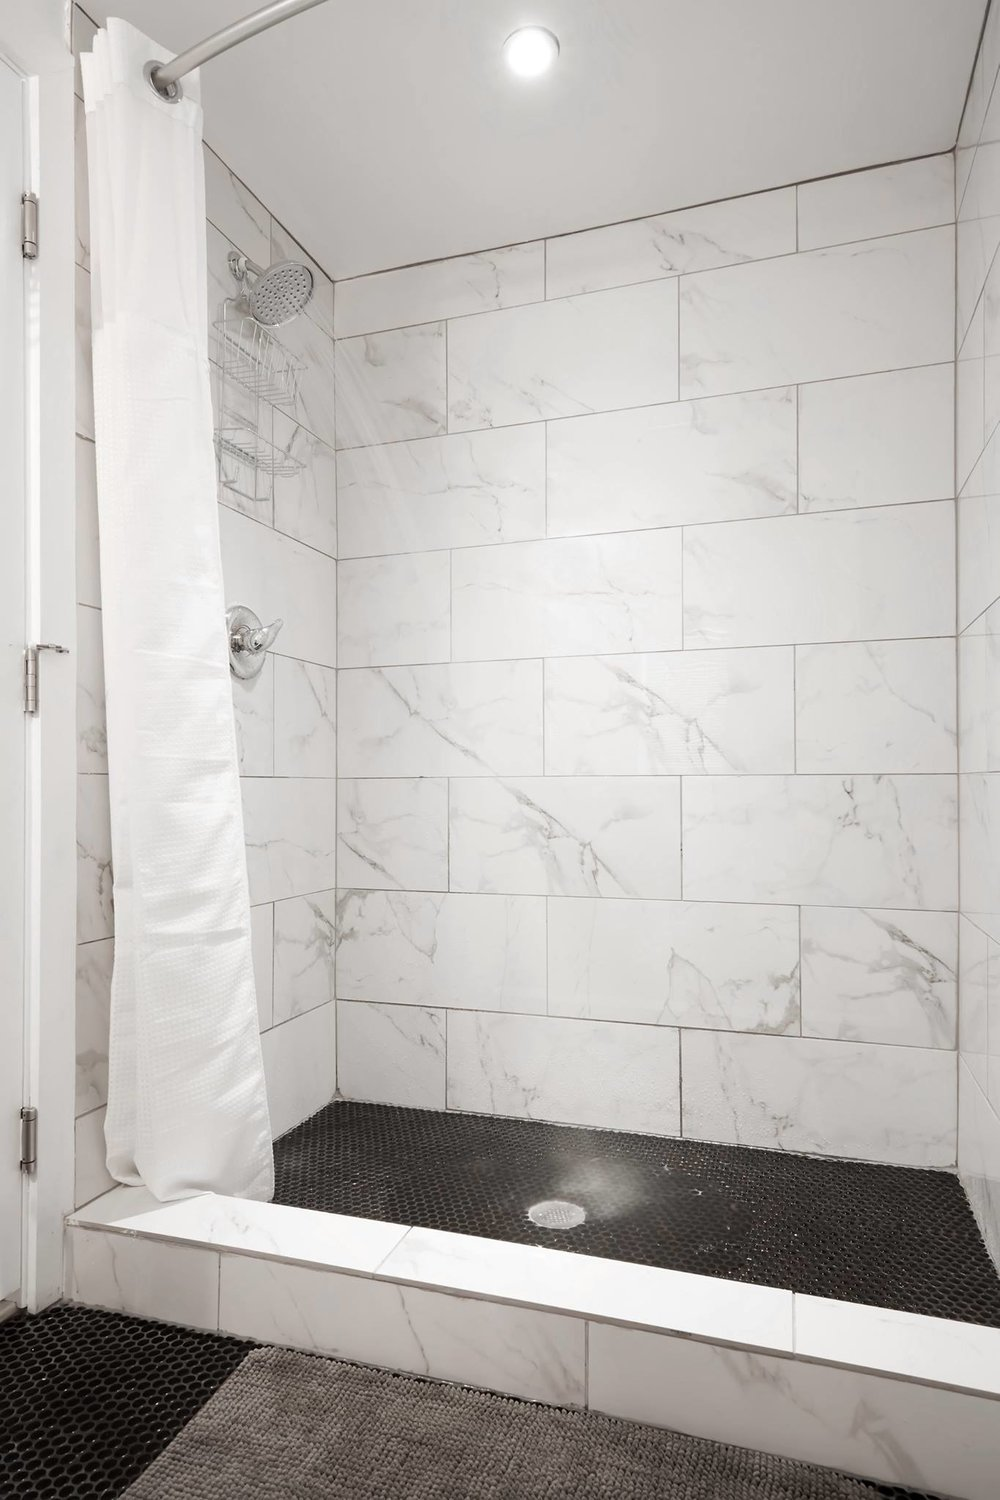 Example guest bathroom shower showing marble-looking tile, chrome showerhead